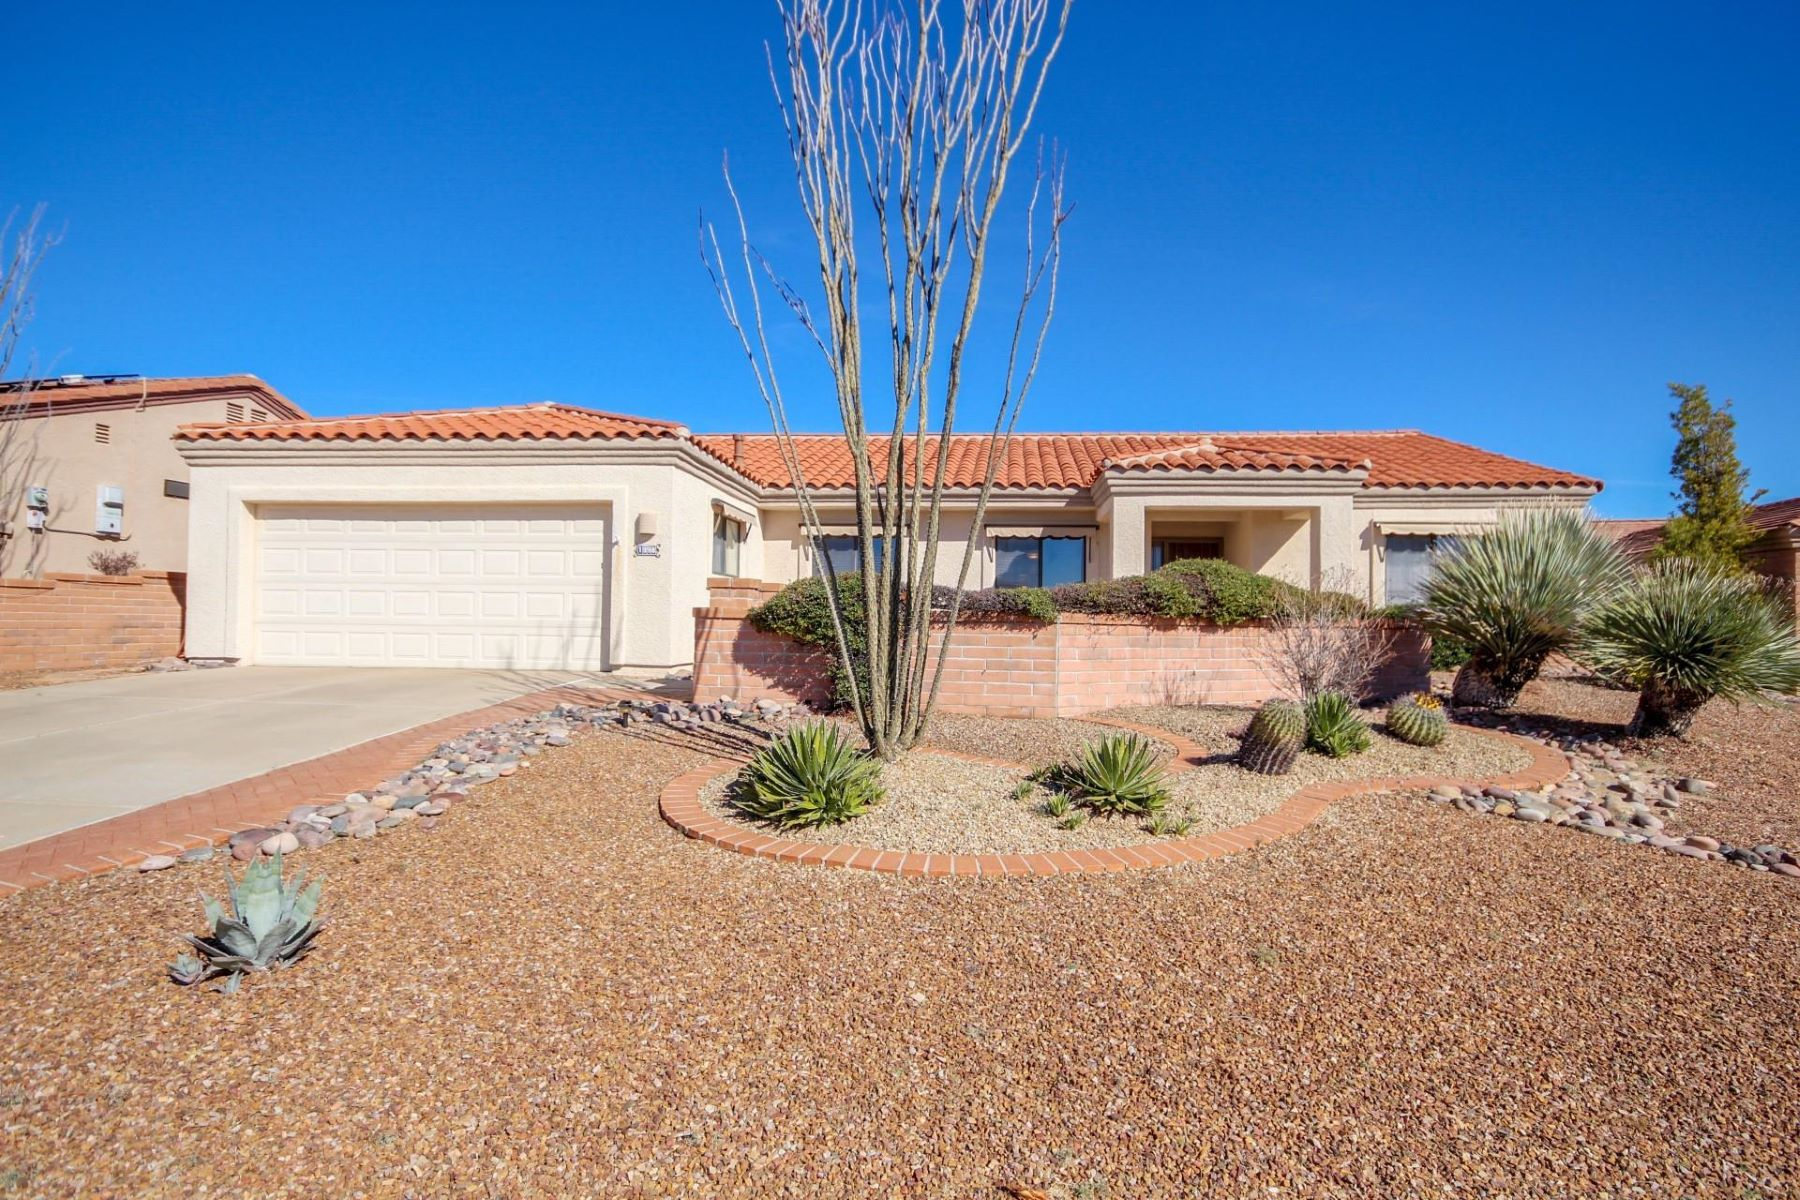 Single Family Homes for Active at Fantastic Golf Course and Mountain Views 1998 W Via Nuevo Leon Green Valley, Arizona 85622 United States